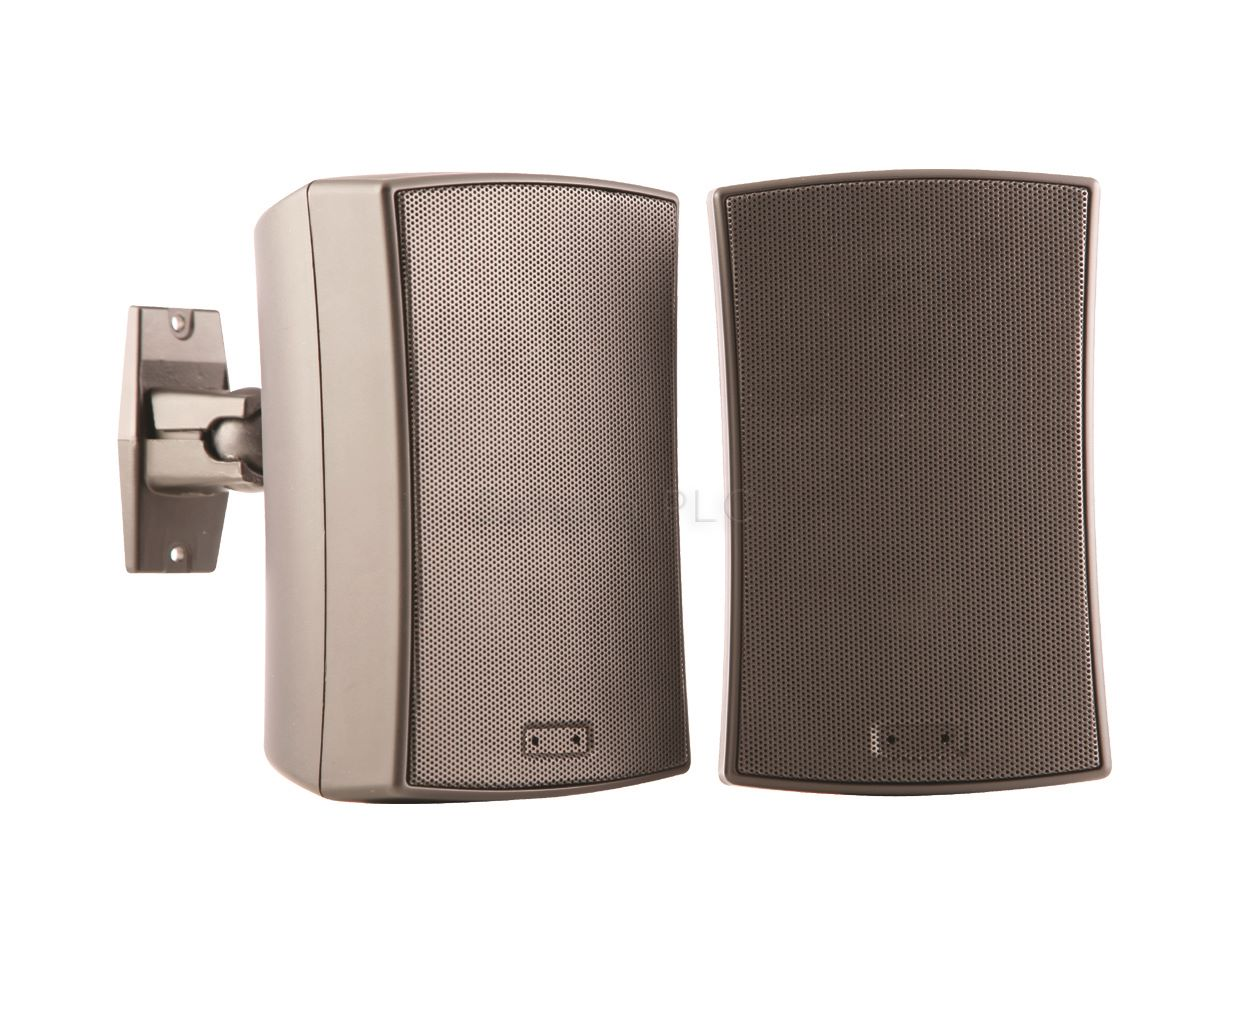 Wall Mounted Indoor Outdoor Speakers